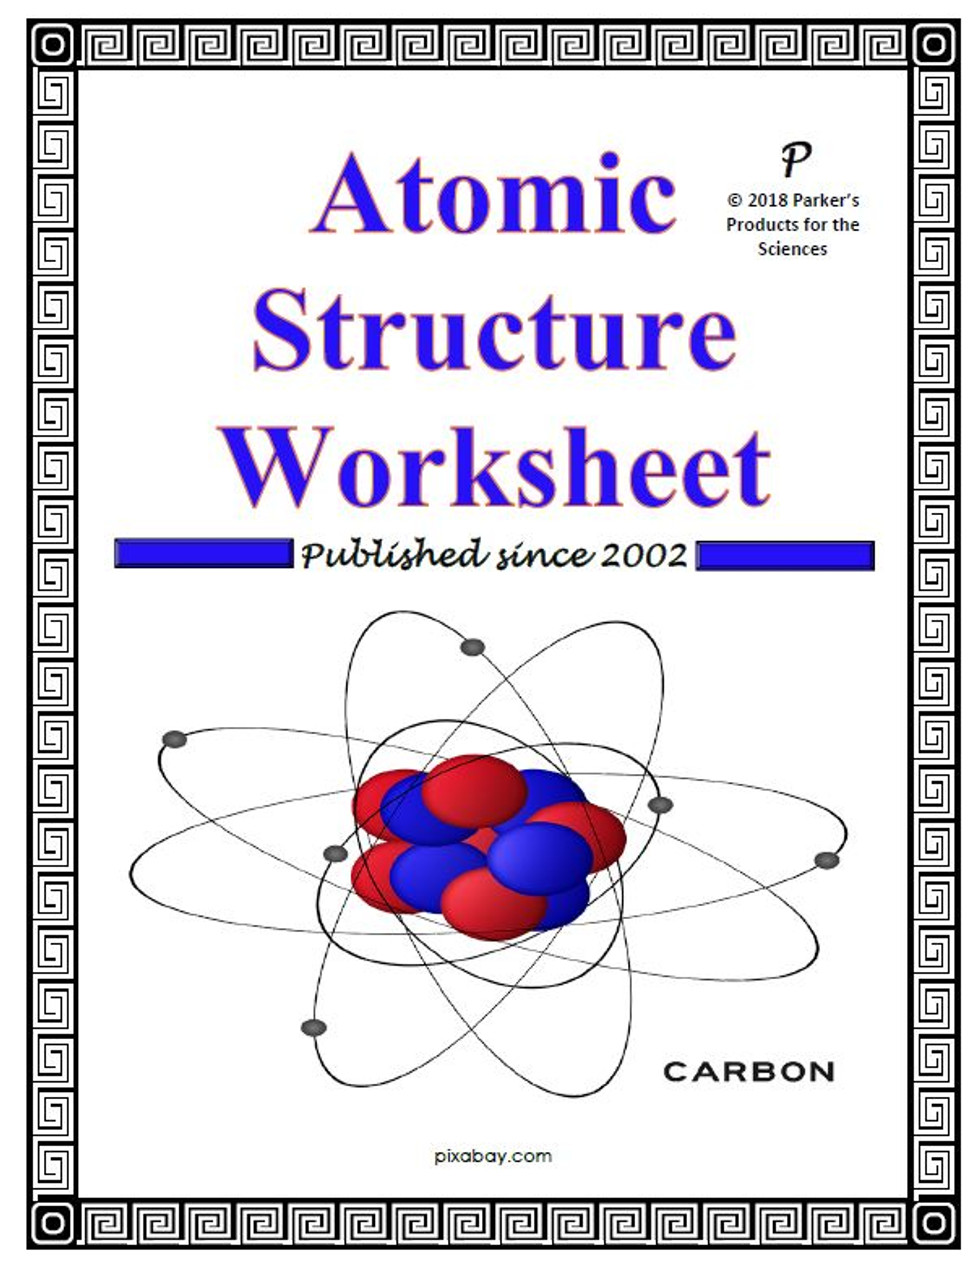 Atomic Structure Worksheet Amped Up Learning